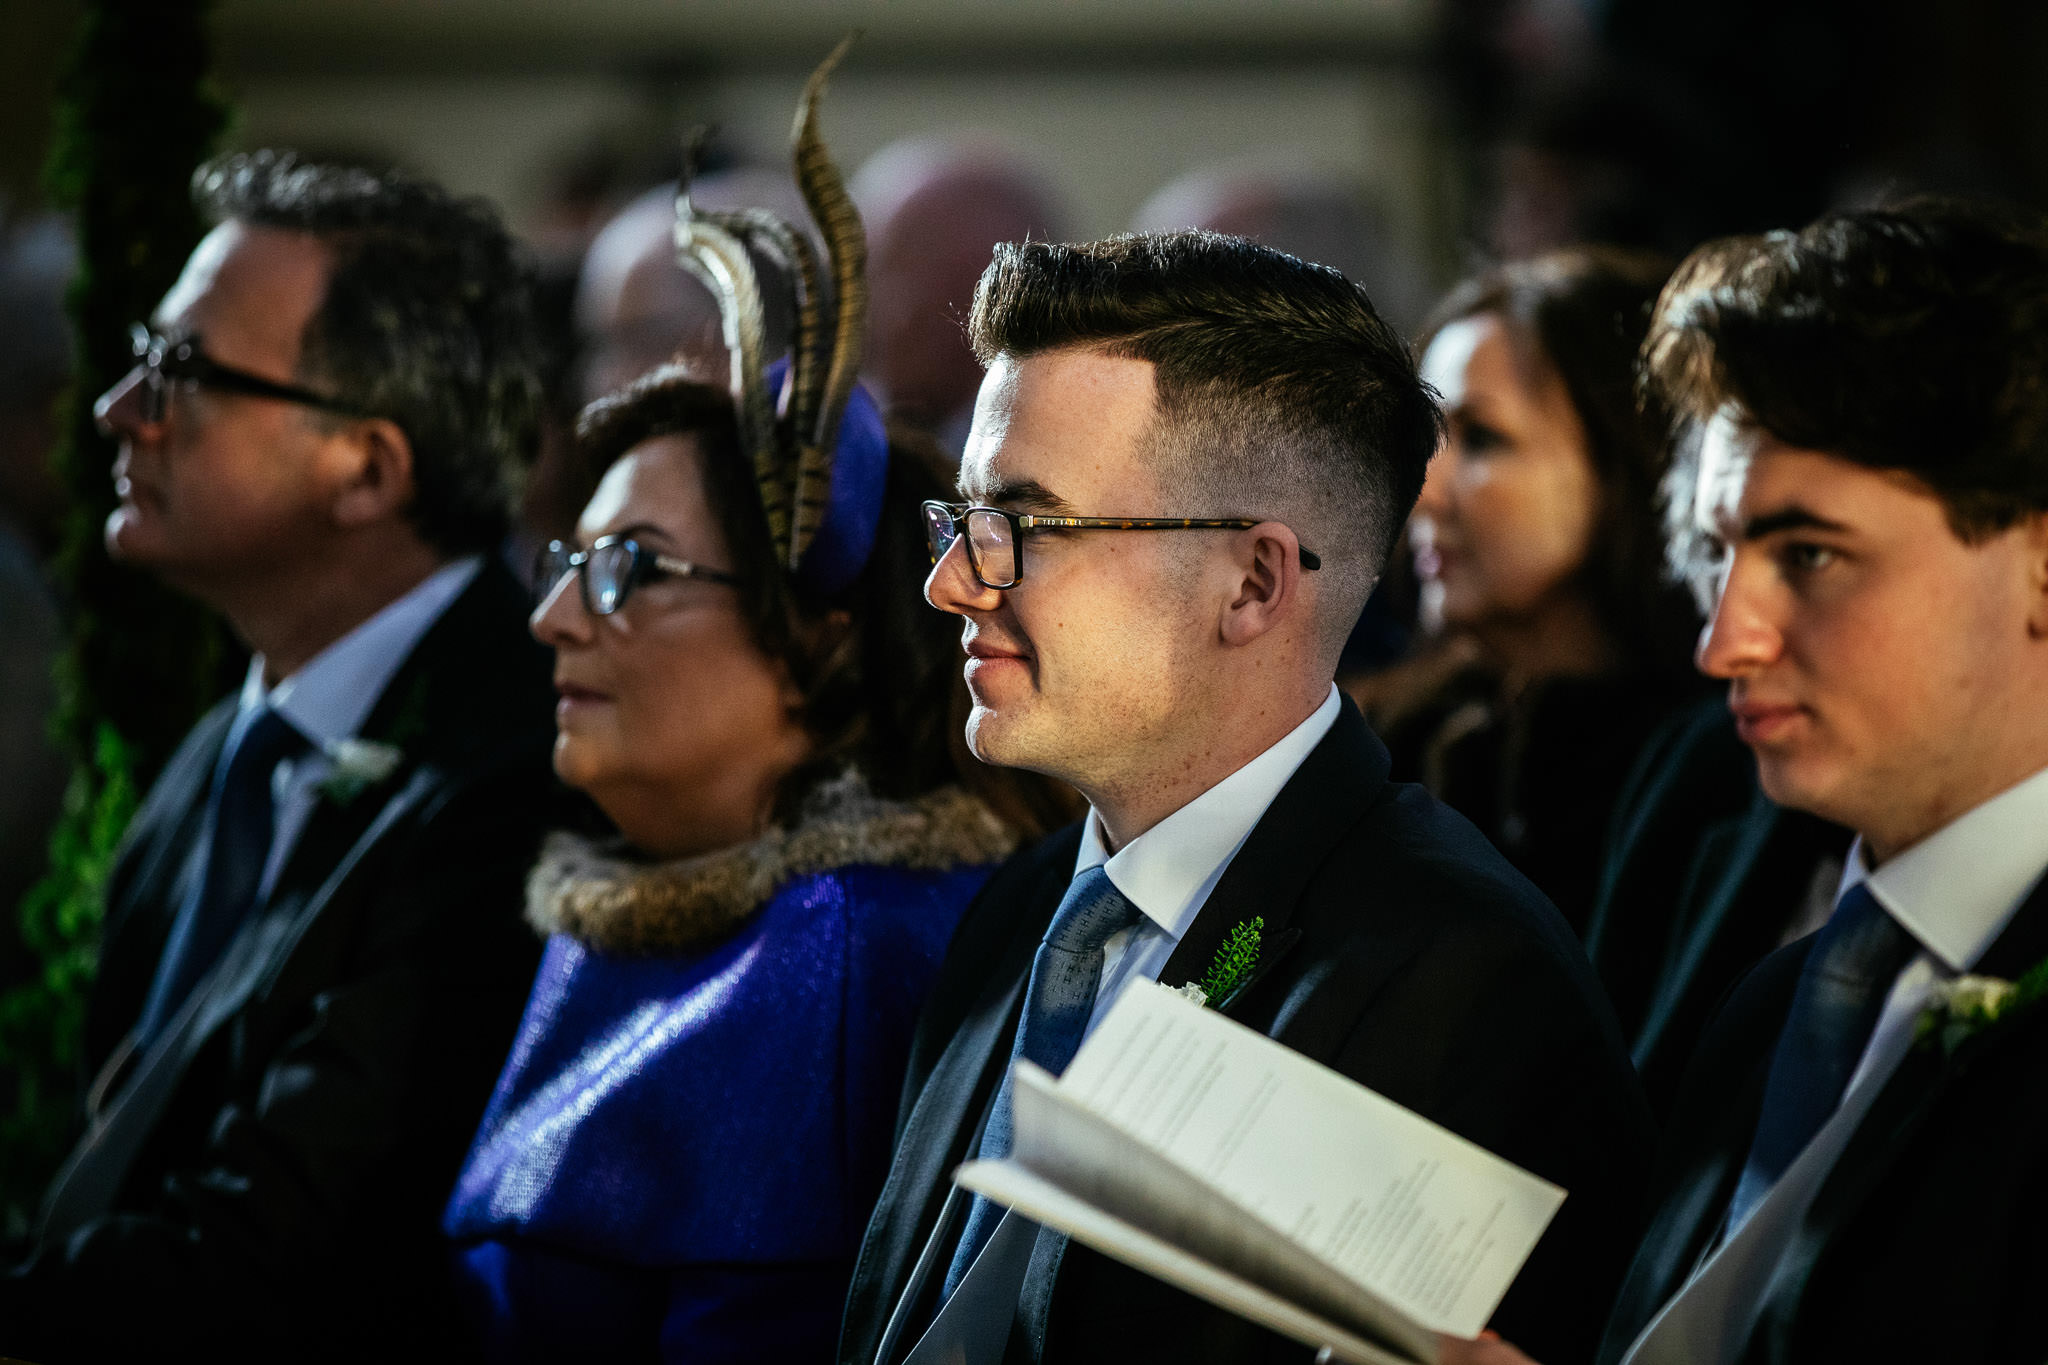 brother of bride smiling during wedding ceremony at St Brigid's Church Oldcastle